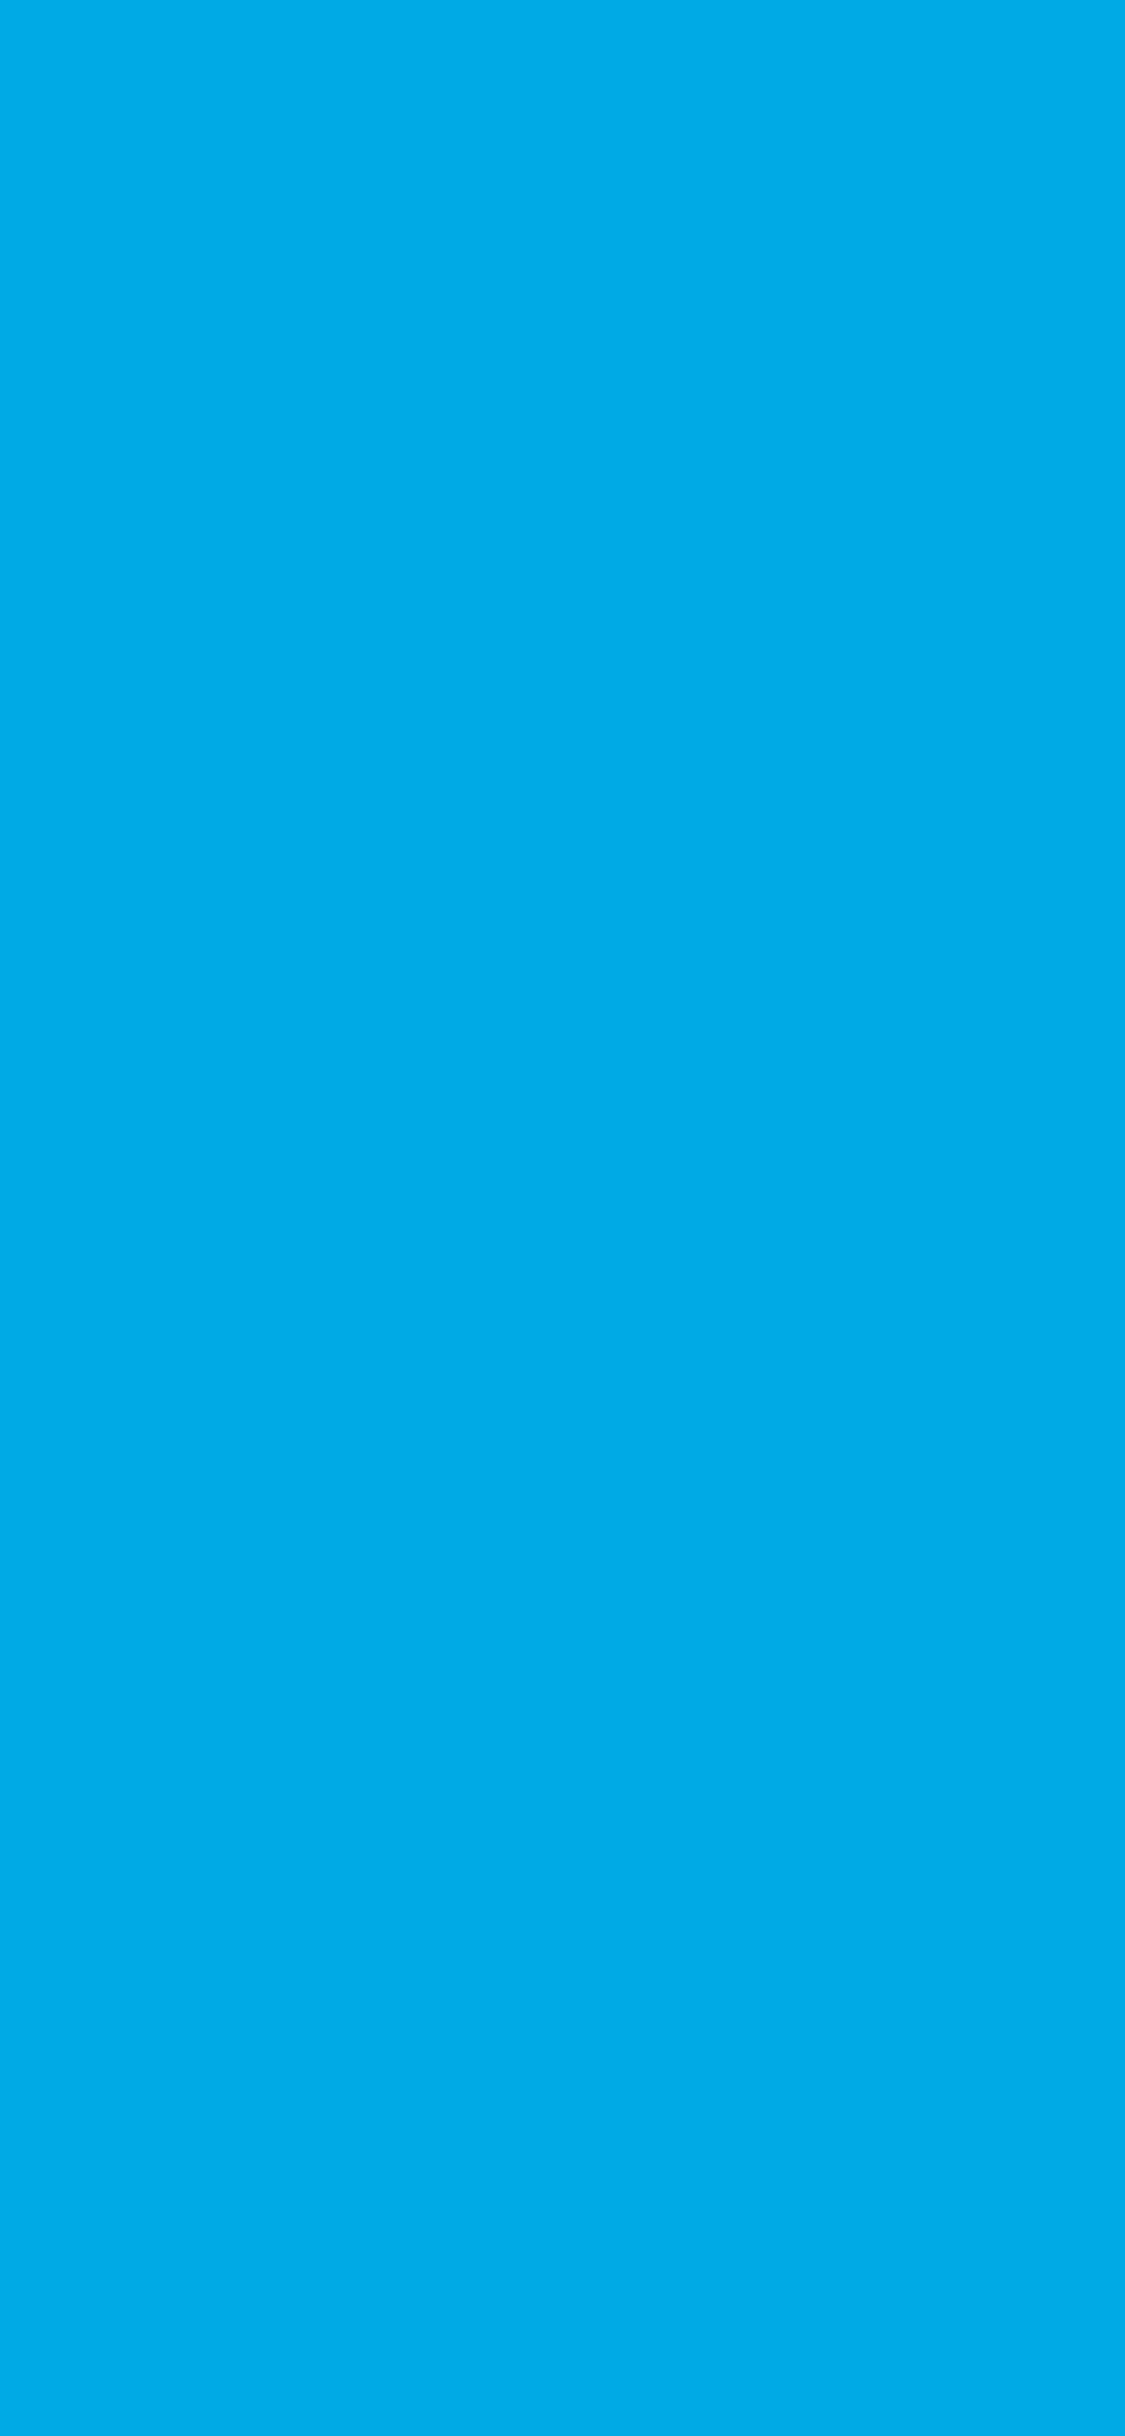 1125x2436 Spanish Sky Blue Solid Color Background